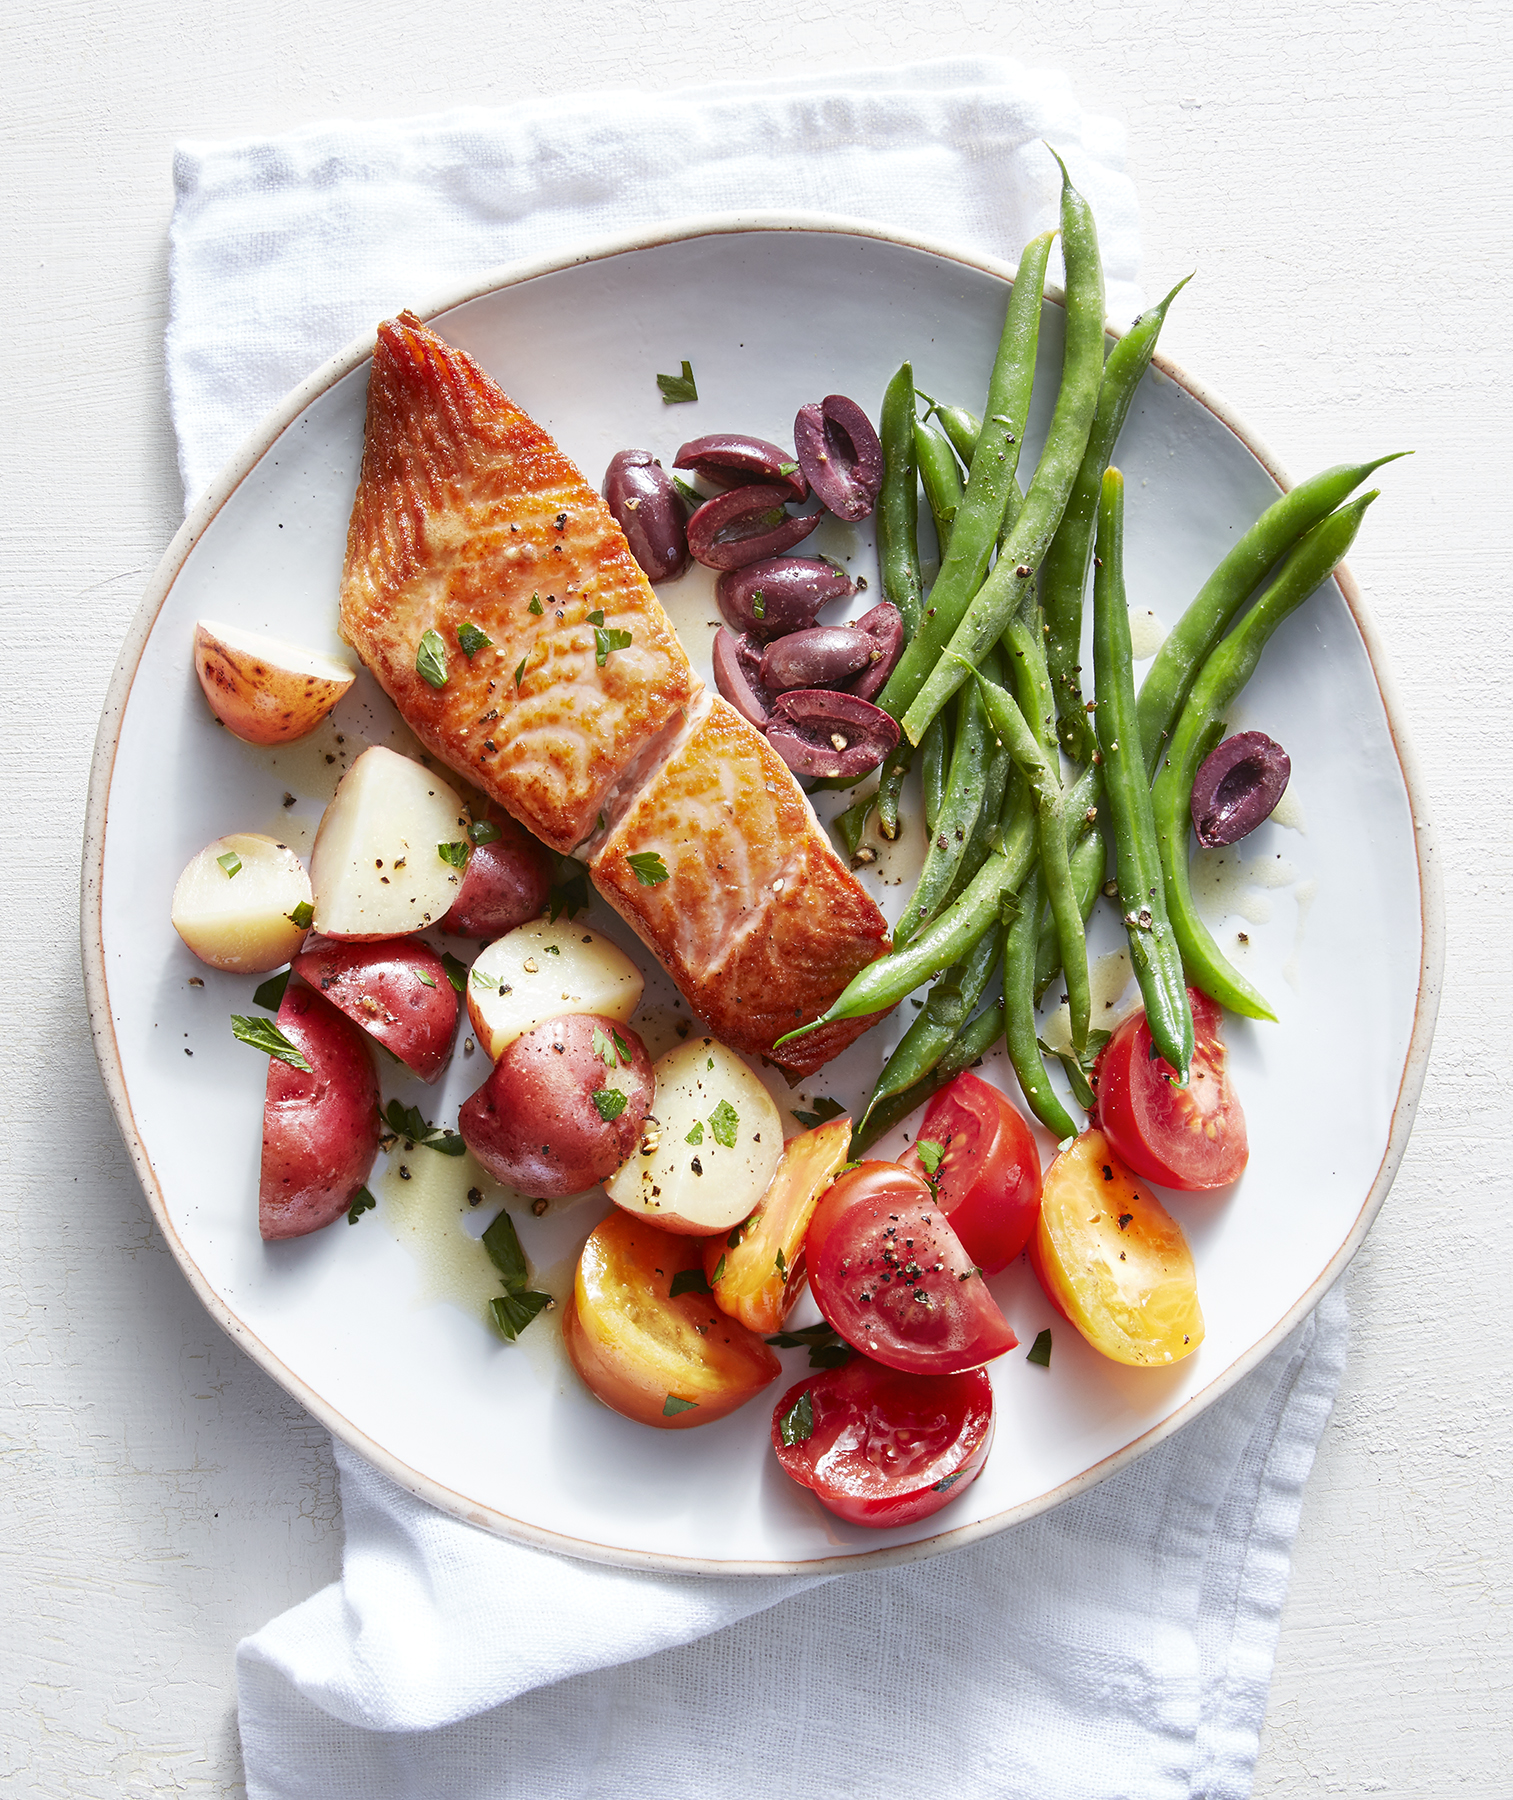 Lemon-Dijon Salmon With Potatoes and Green Beans